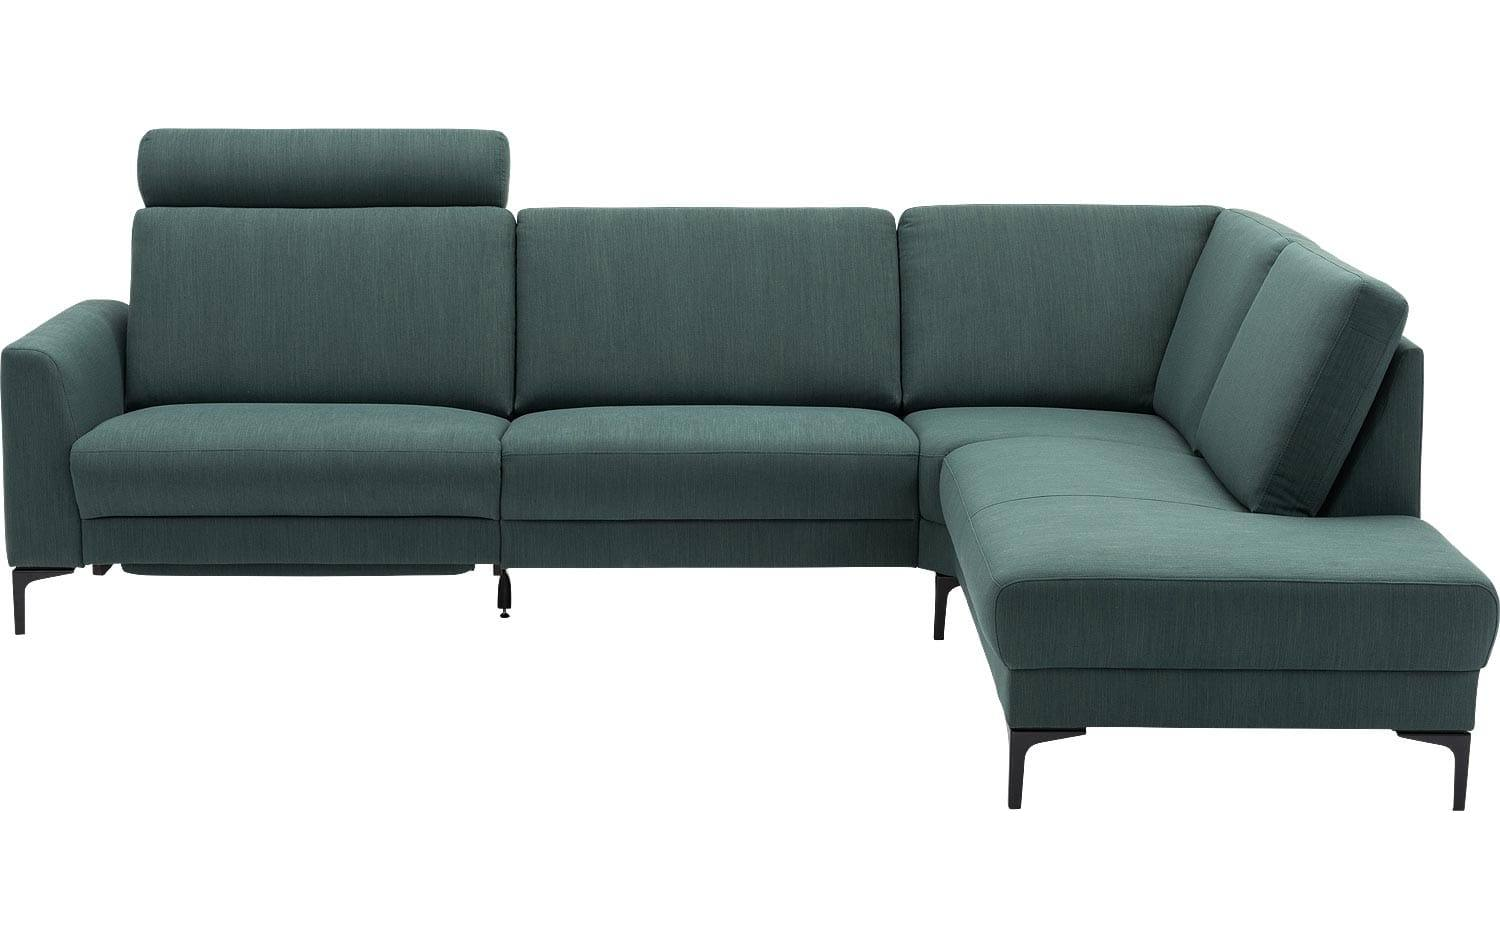 Hoek Bank Modern Ecksofa Dallas